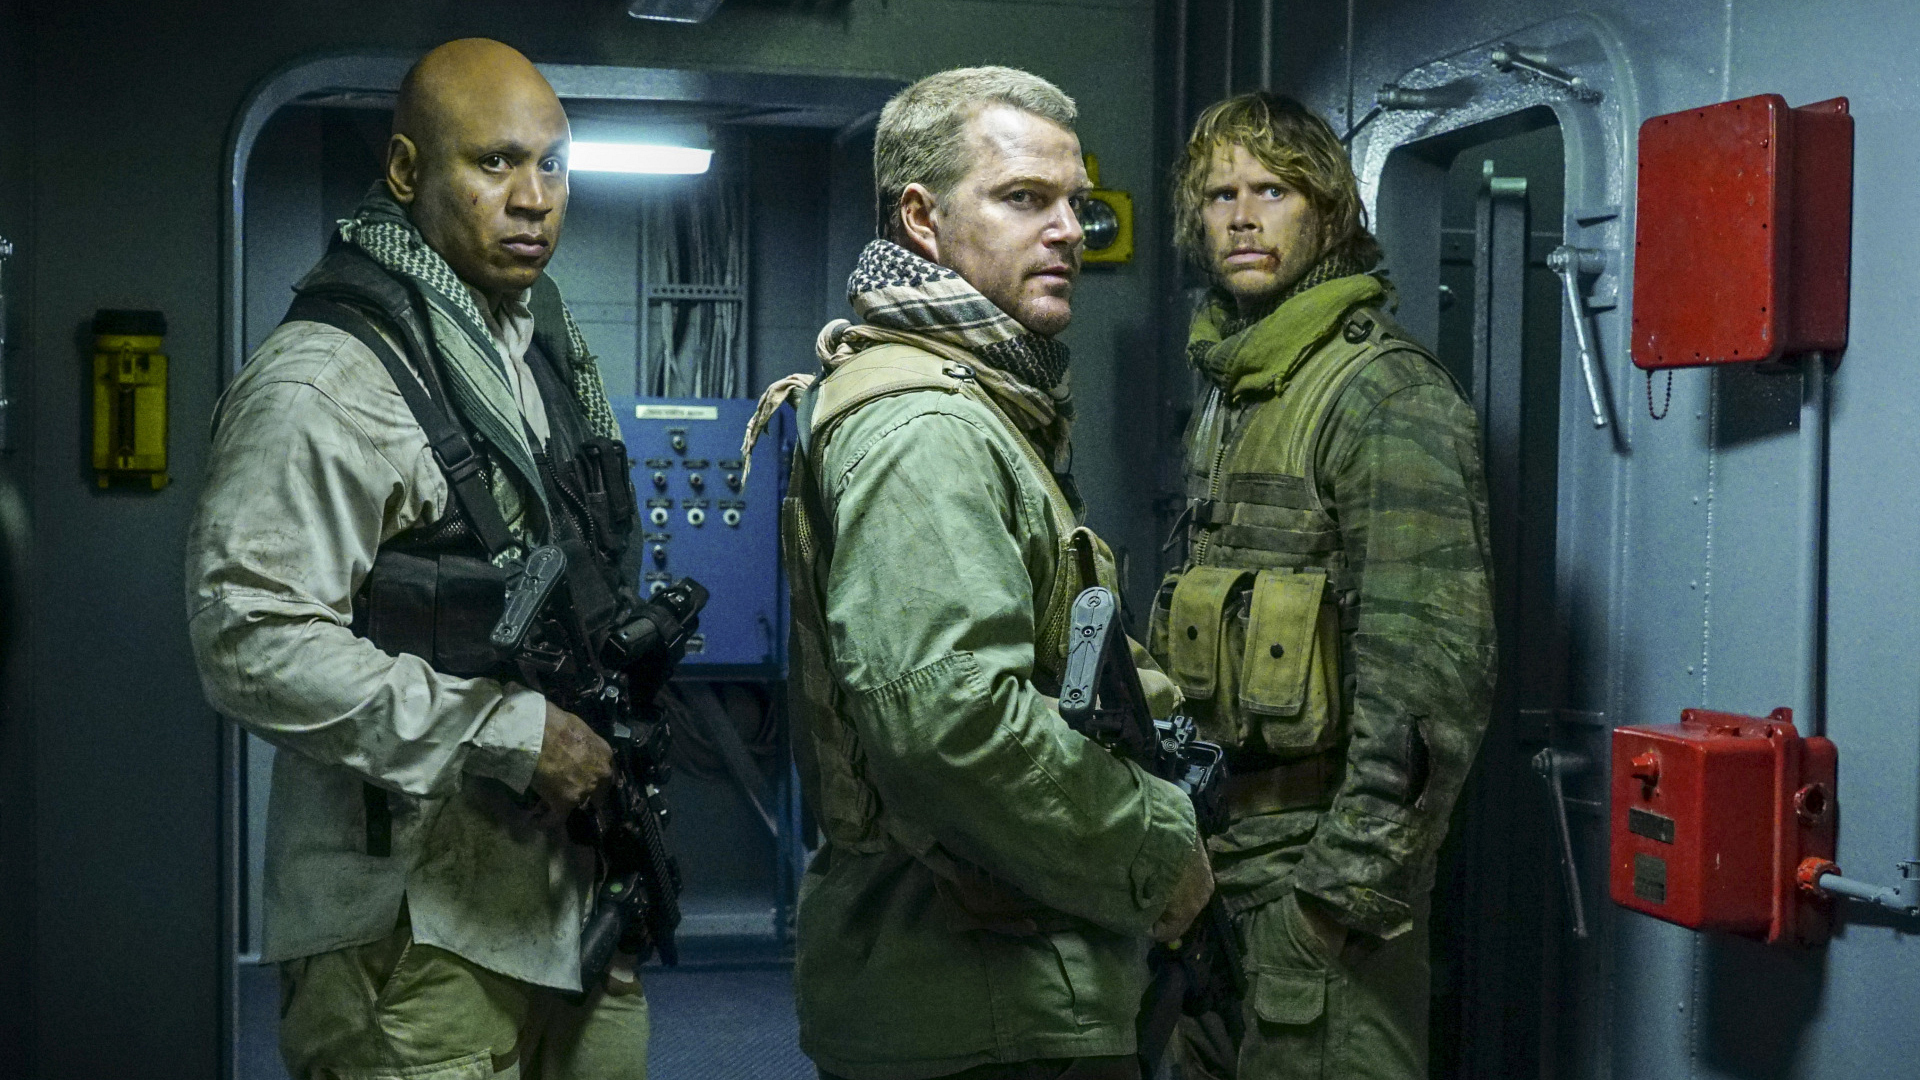 Sam, Callen, and Deeks fully geared up.